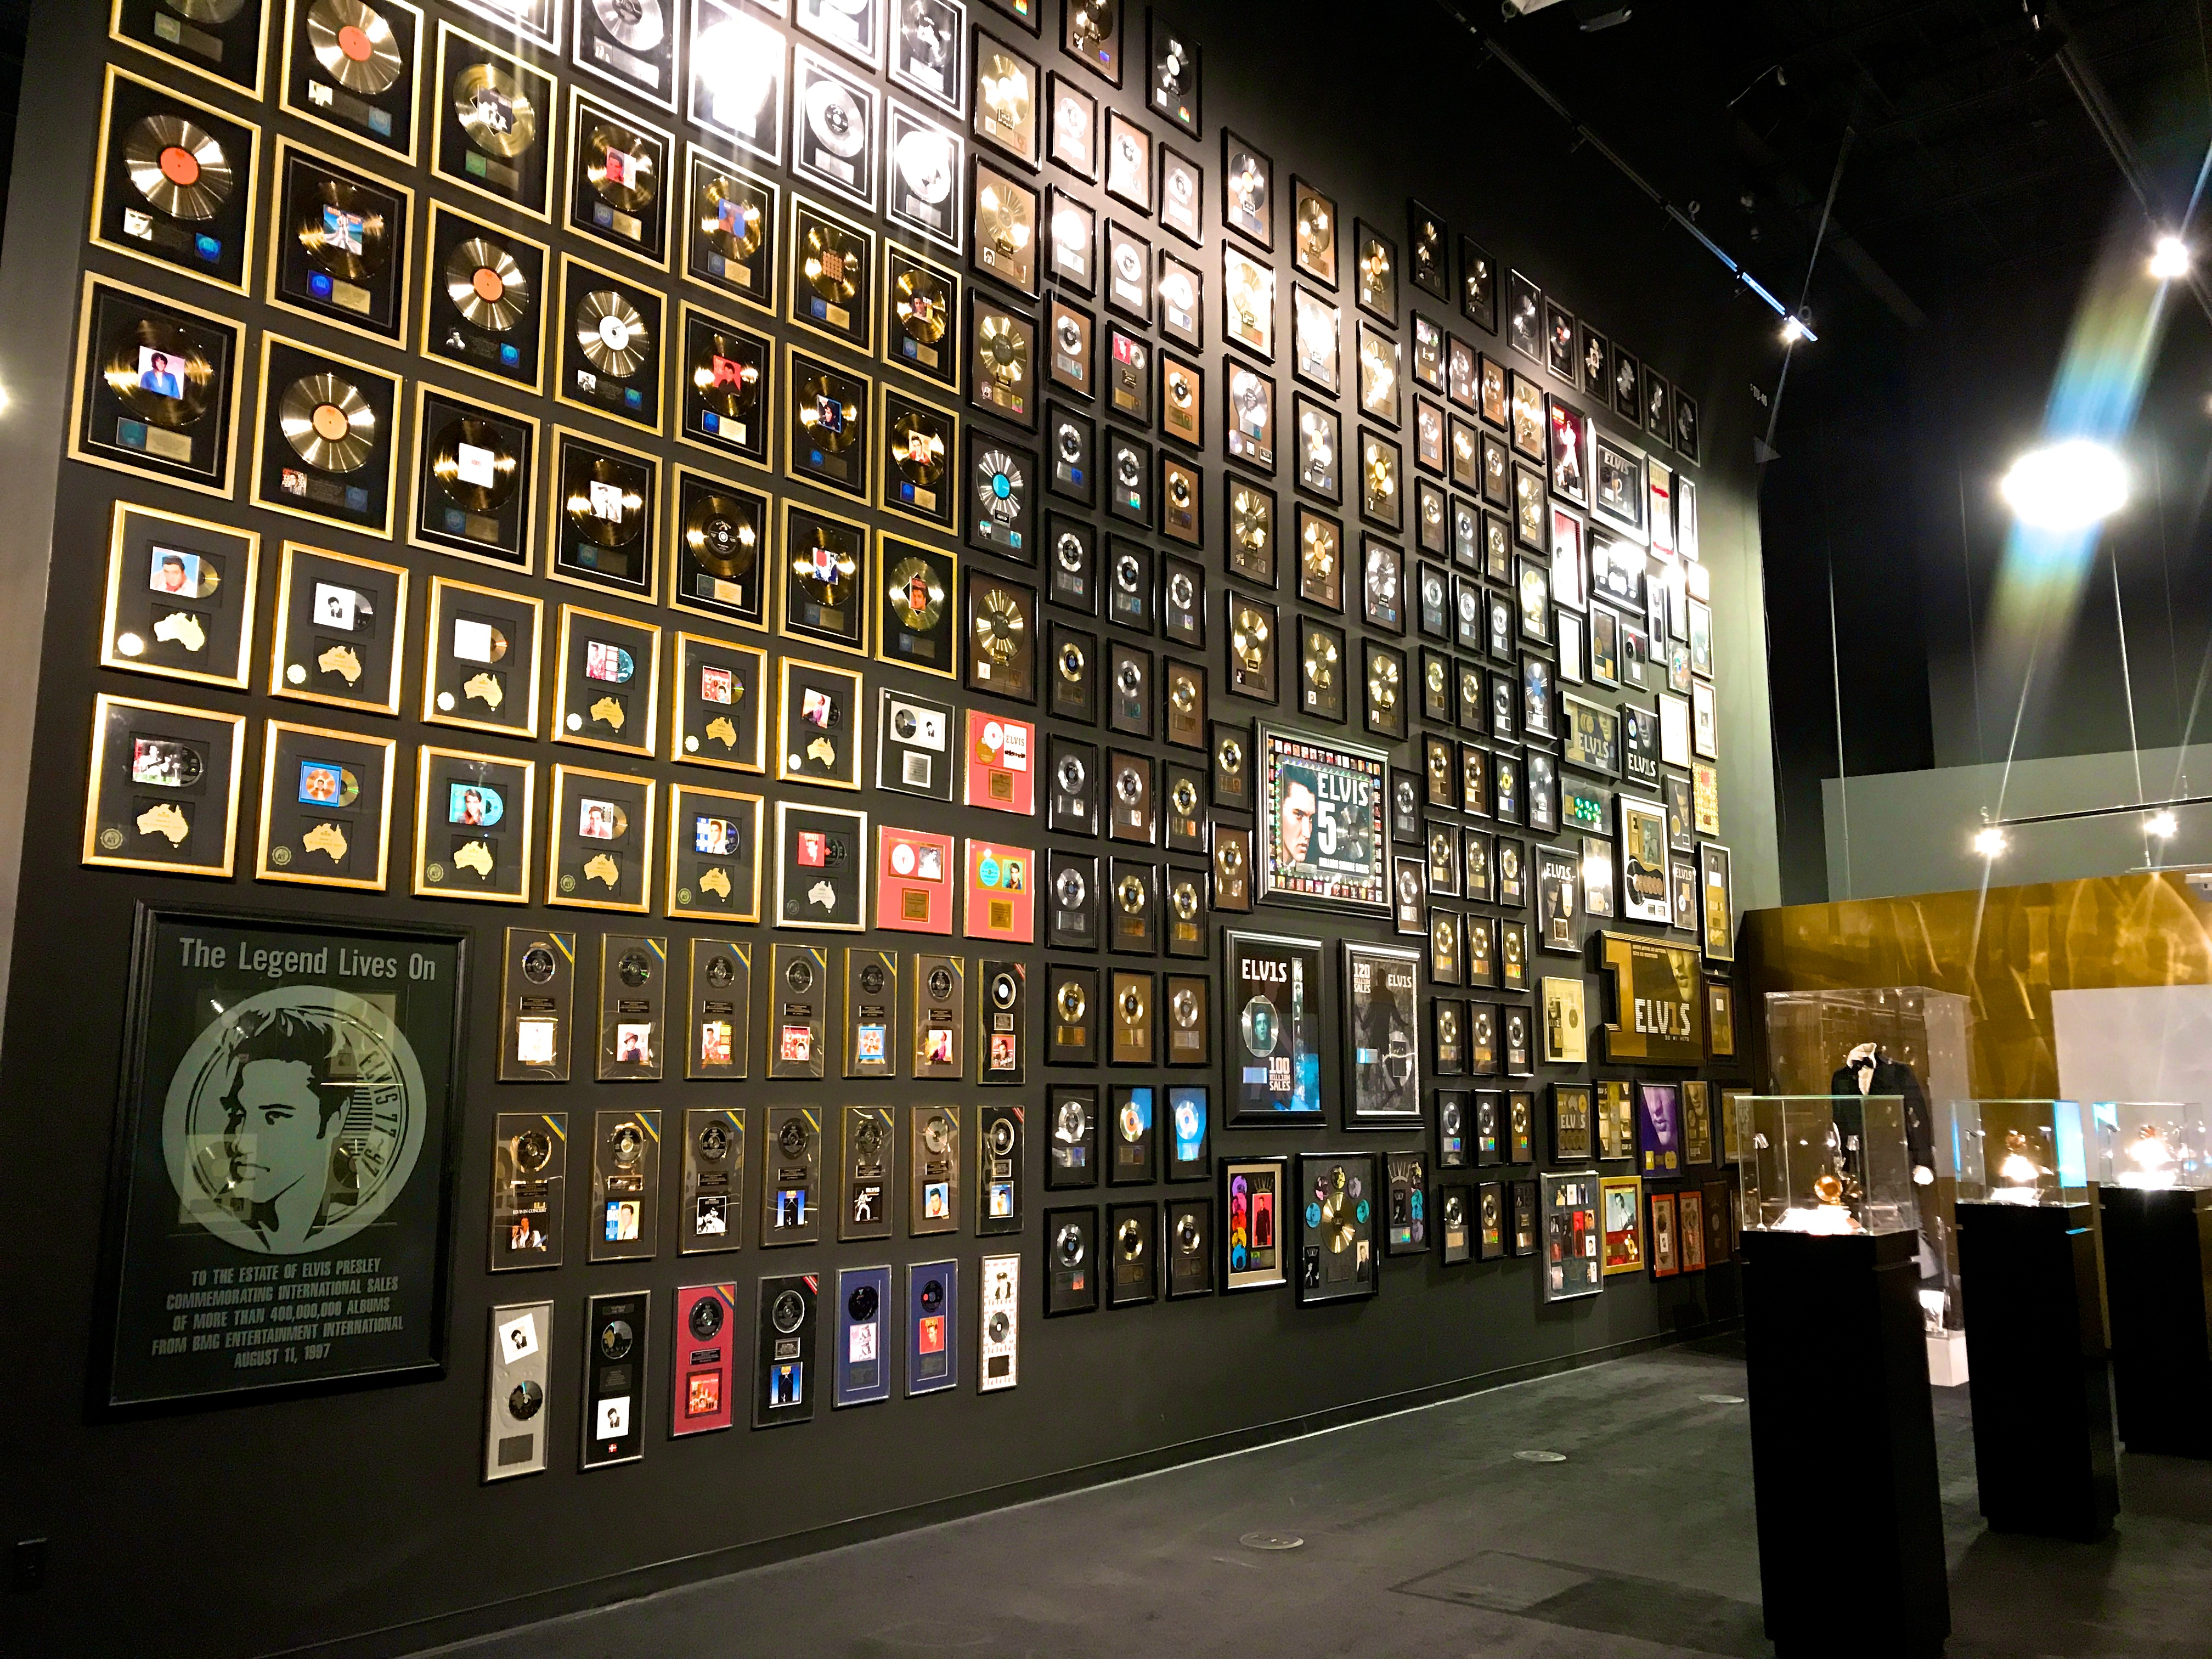 Elvis wall of records